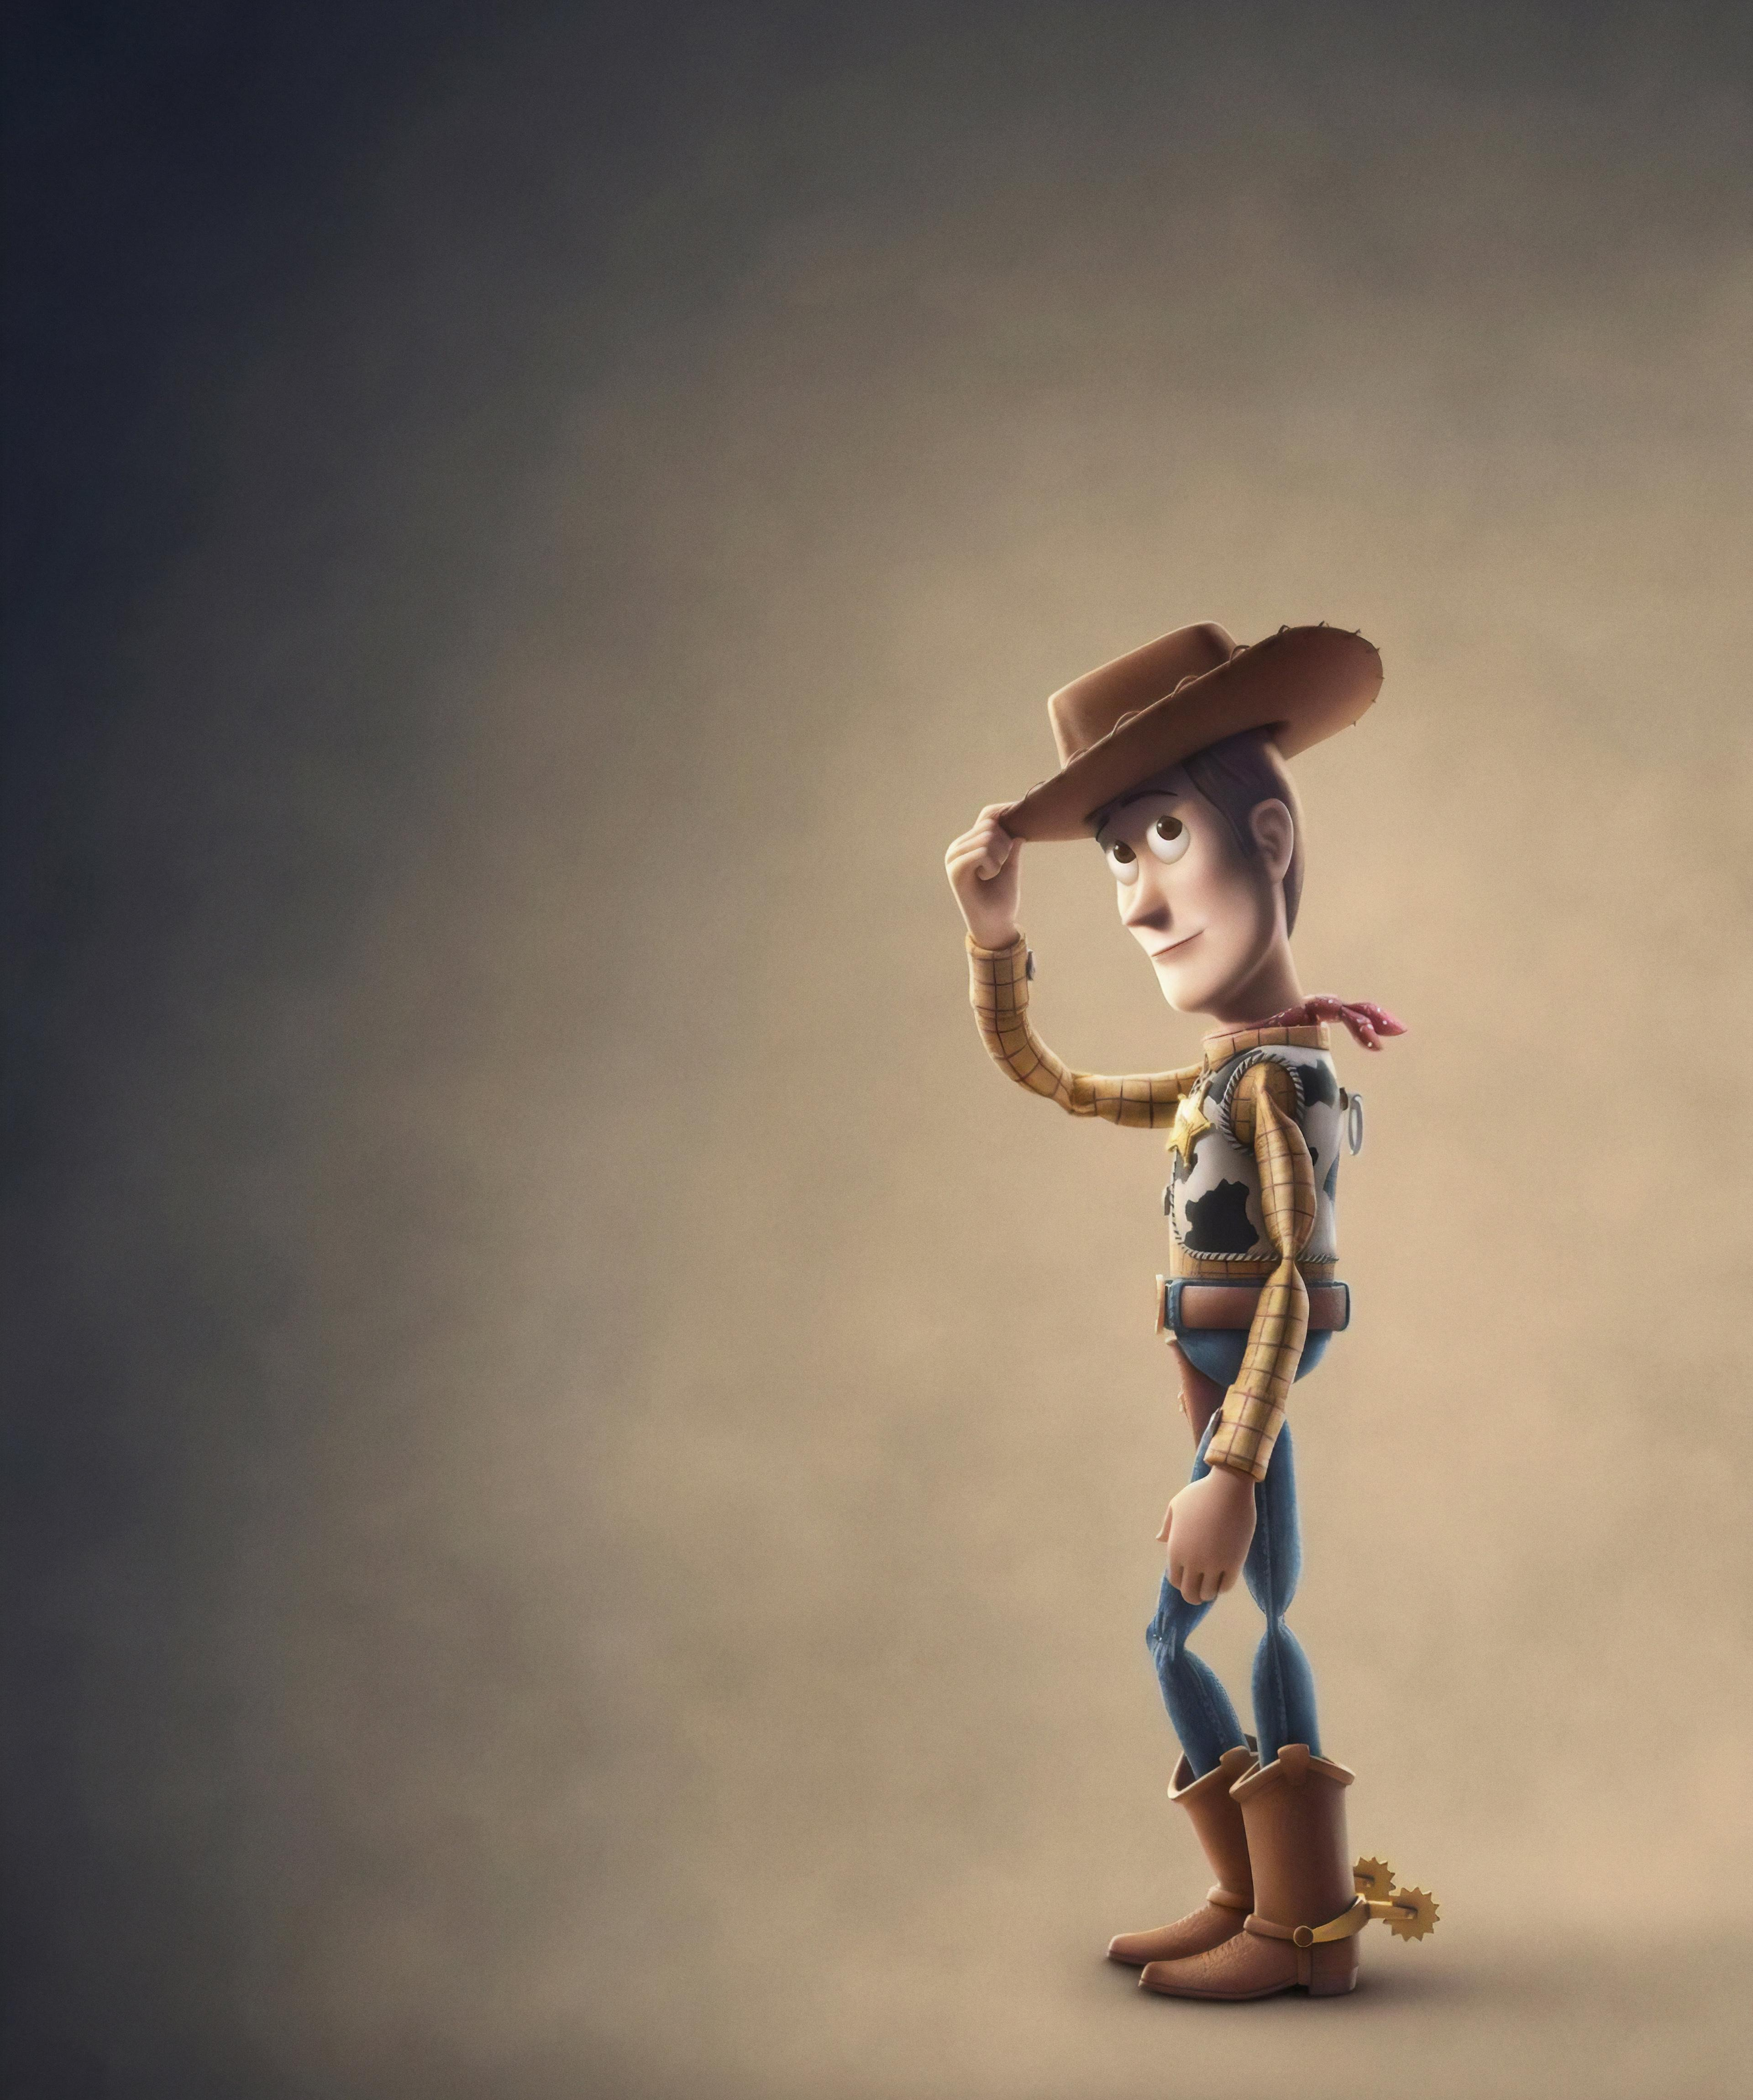 Wallpaper Toy Story 4, Woody, Animation, Pixar, 4K, Movies, #16683